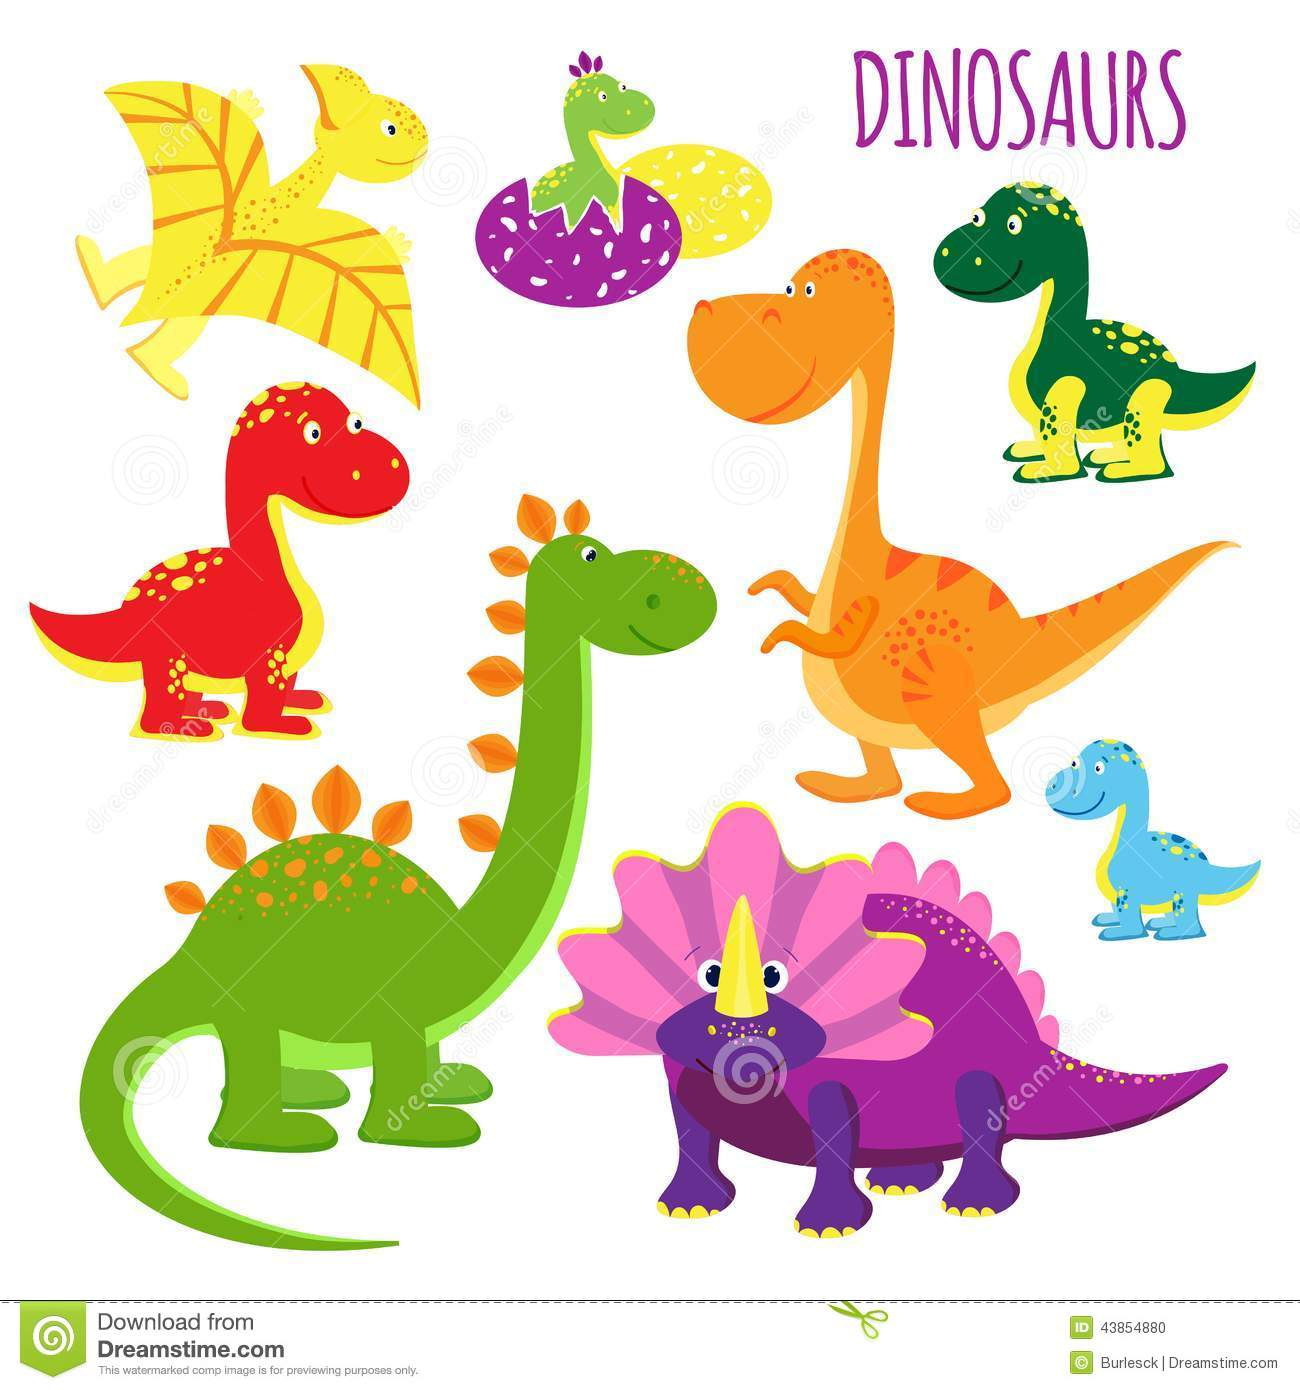 dinosaurs for kids sho...